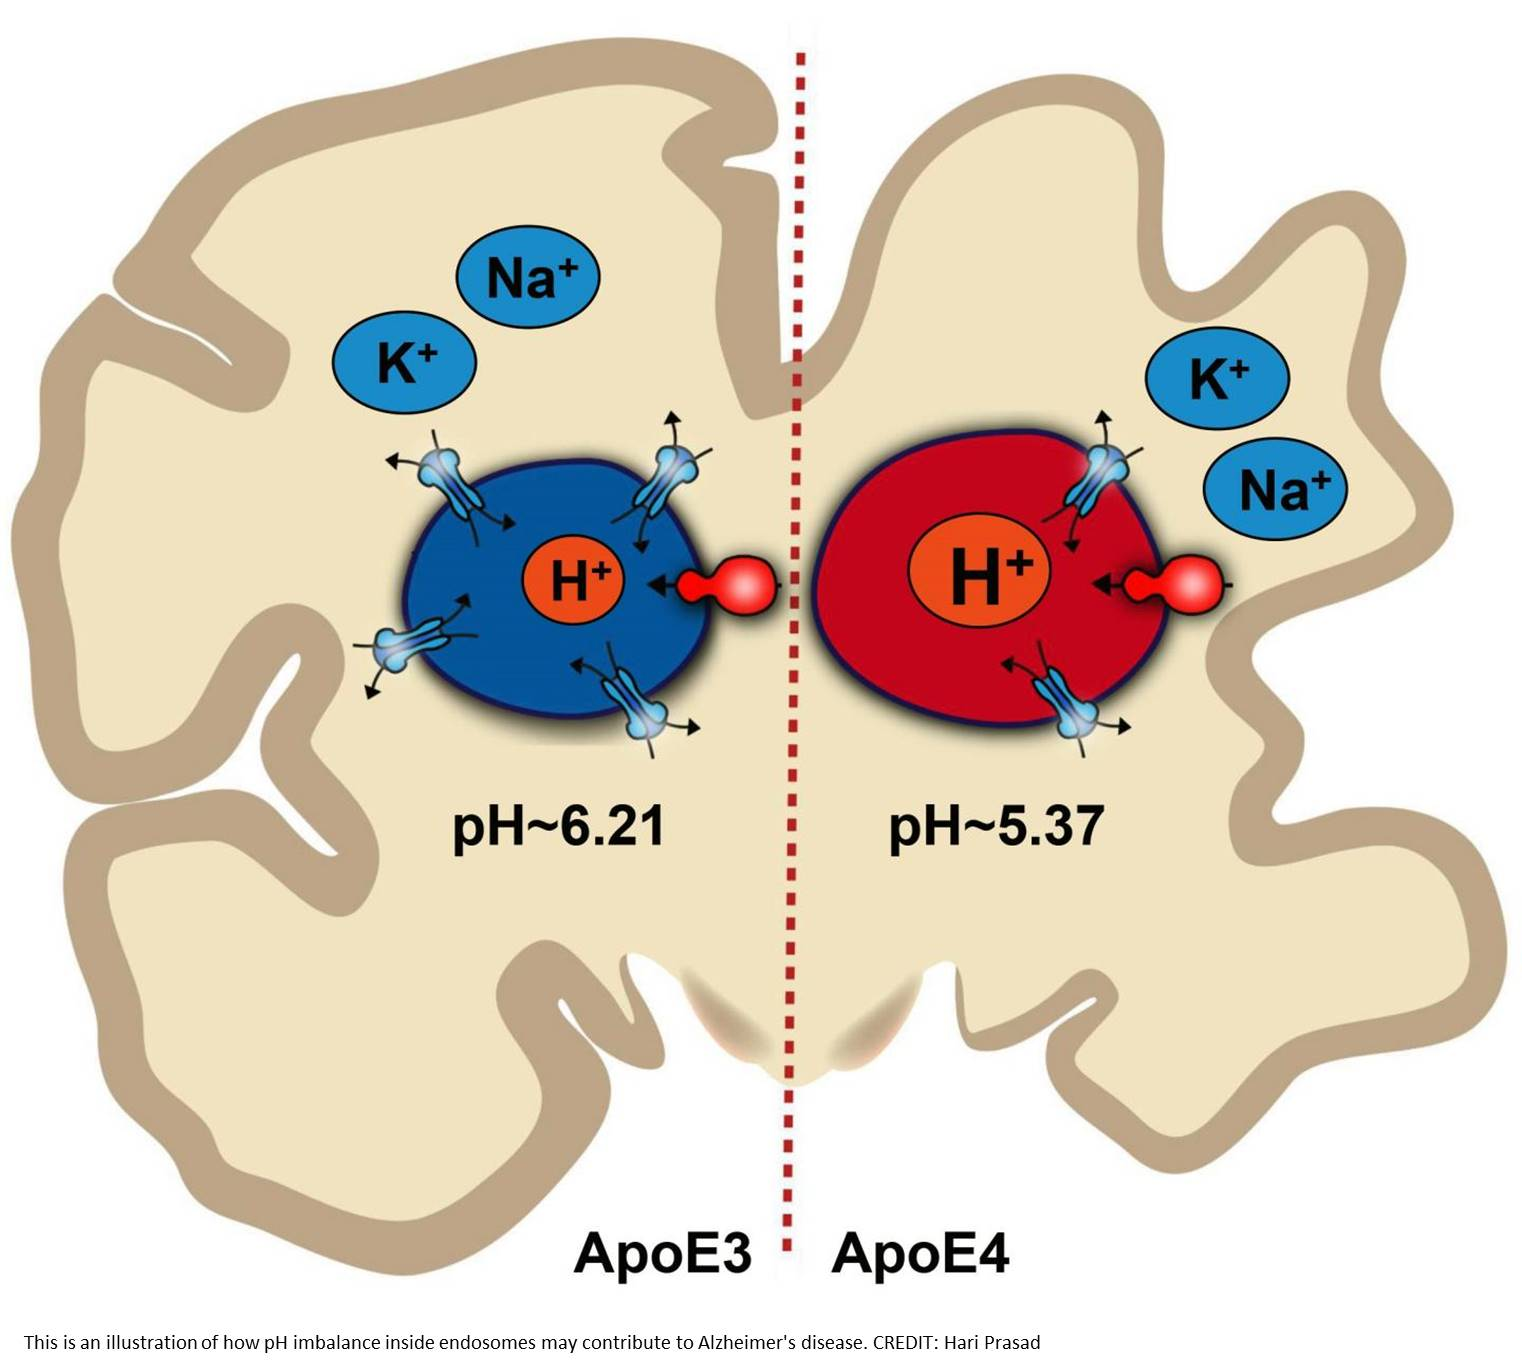 Alzheimer's disease brains have pH imbalance